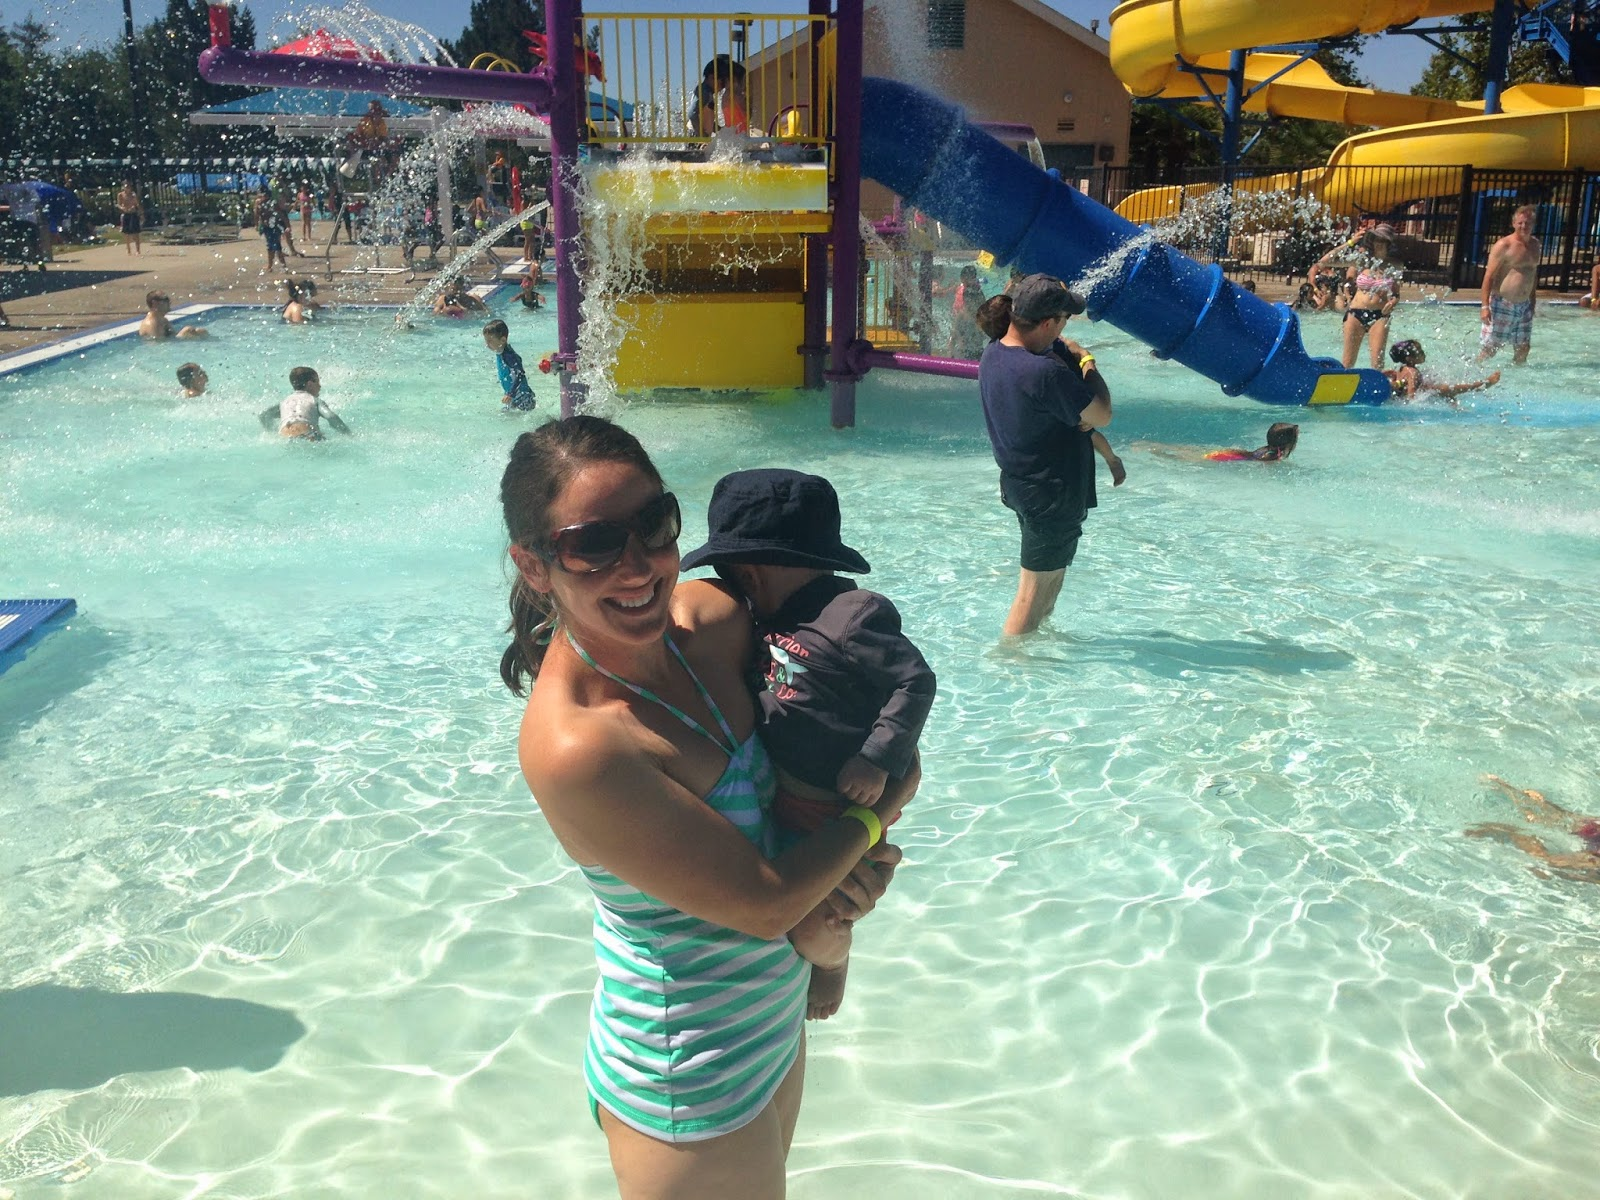 He Was In Awe Of All The Kids And Toddlers Running Through The Shallow  Water And Playing On The Pool Playground. In Fact, This Was One Of The Only  Times In ...